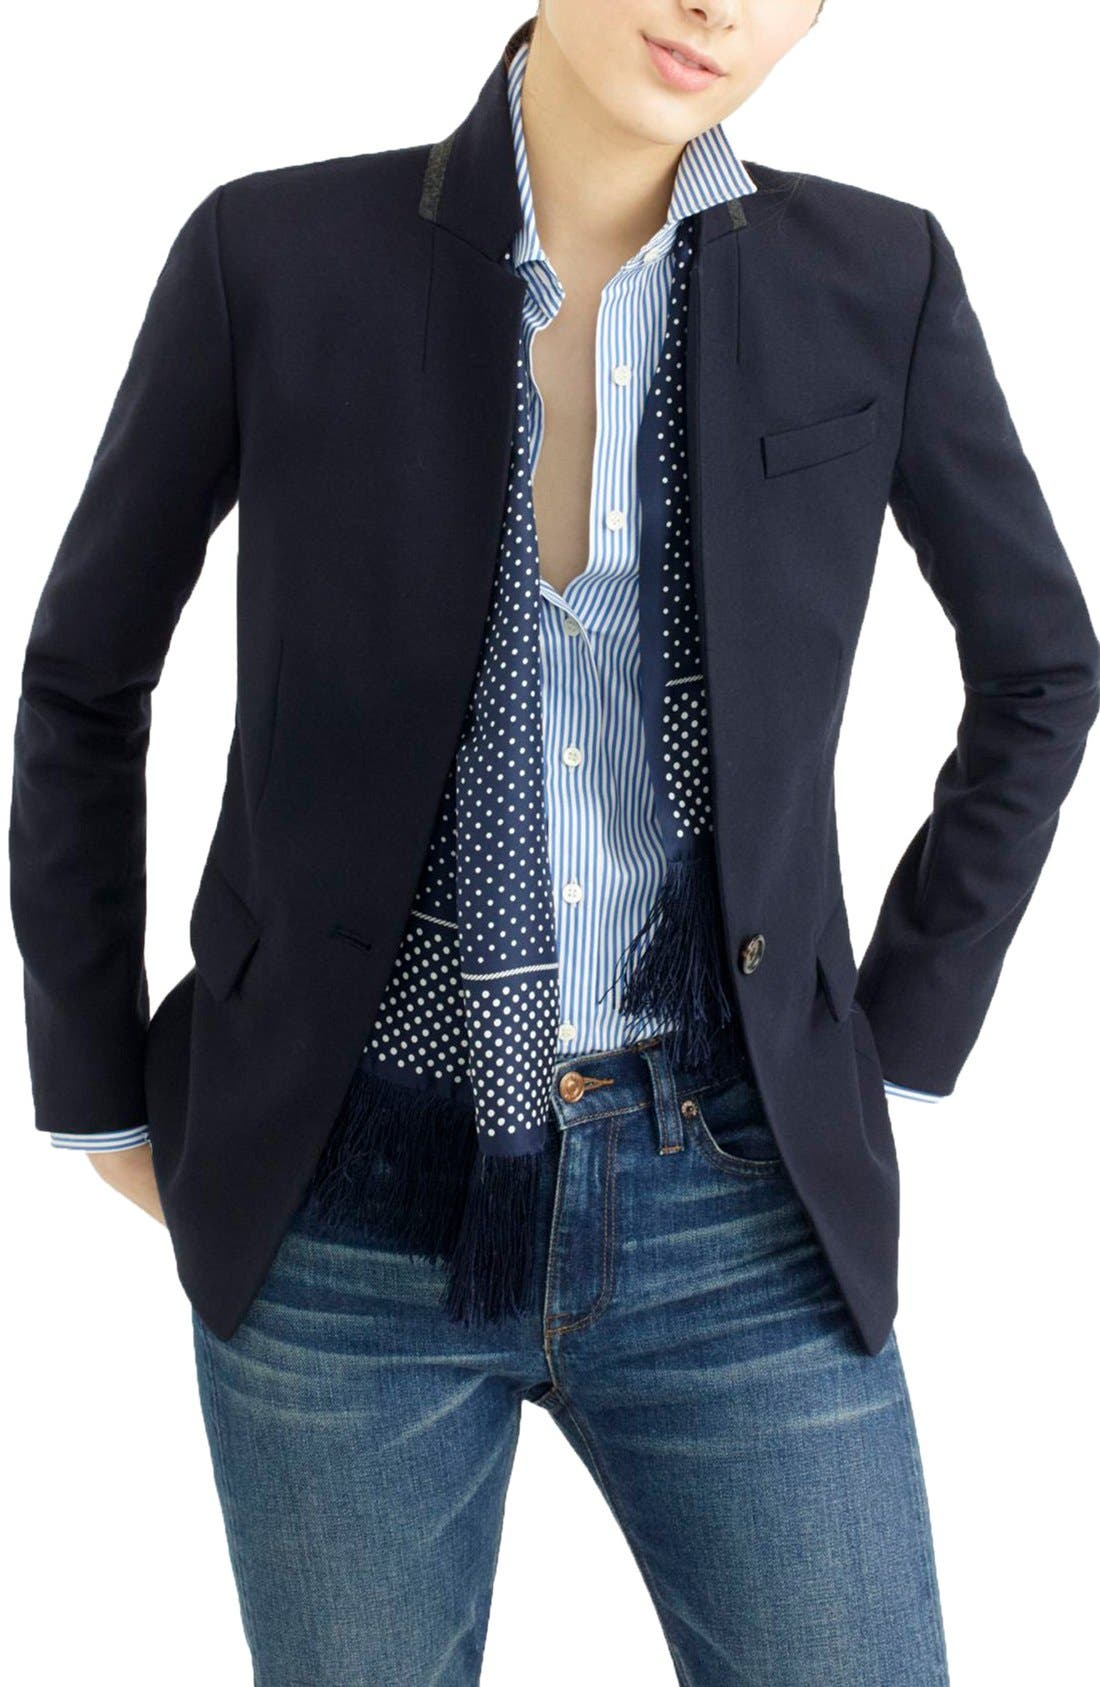 Alternate Image 1 Selected - J.Crew Regent Stand Collar Blazer (Regular & Petite)